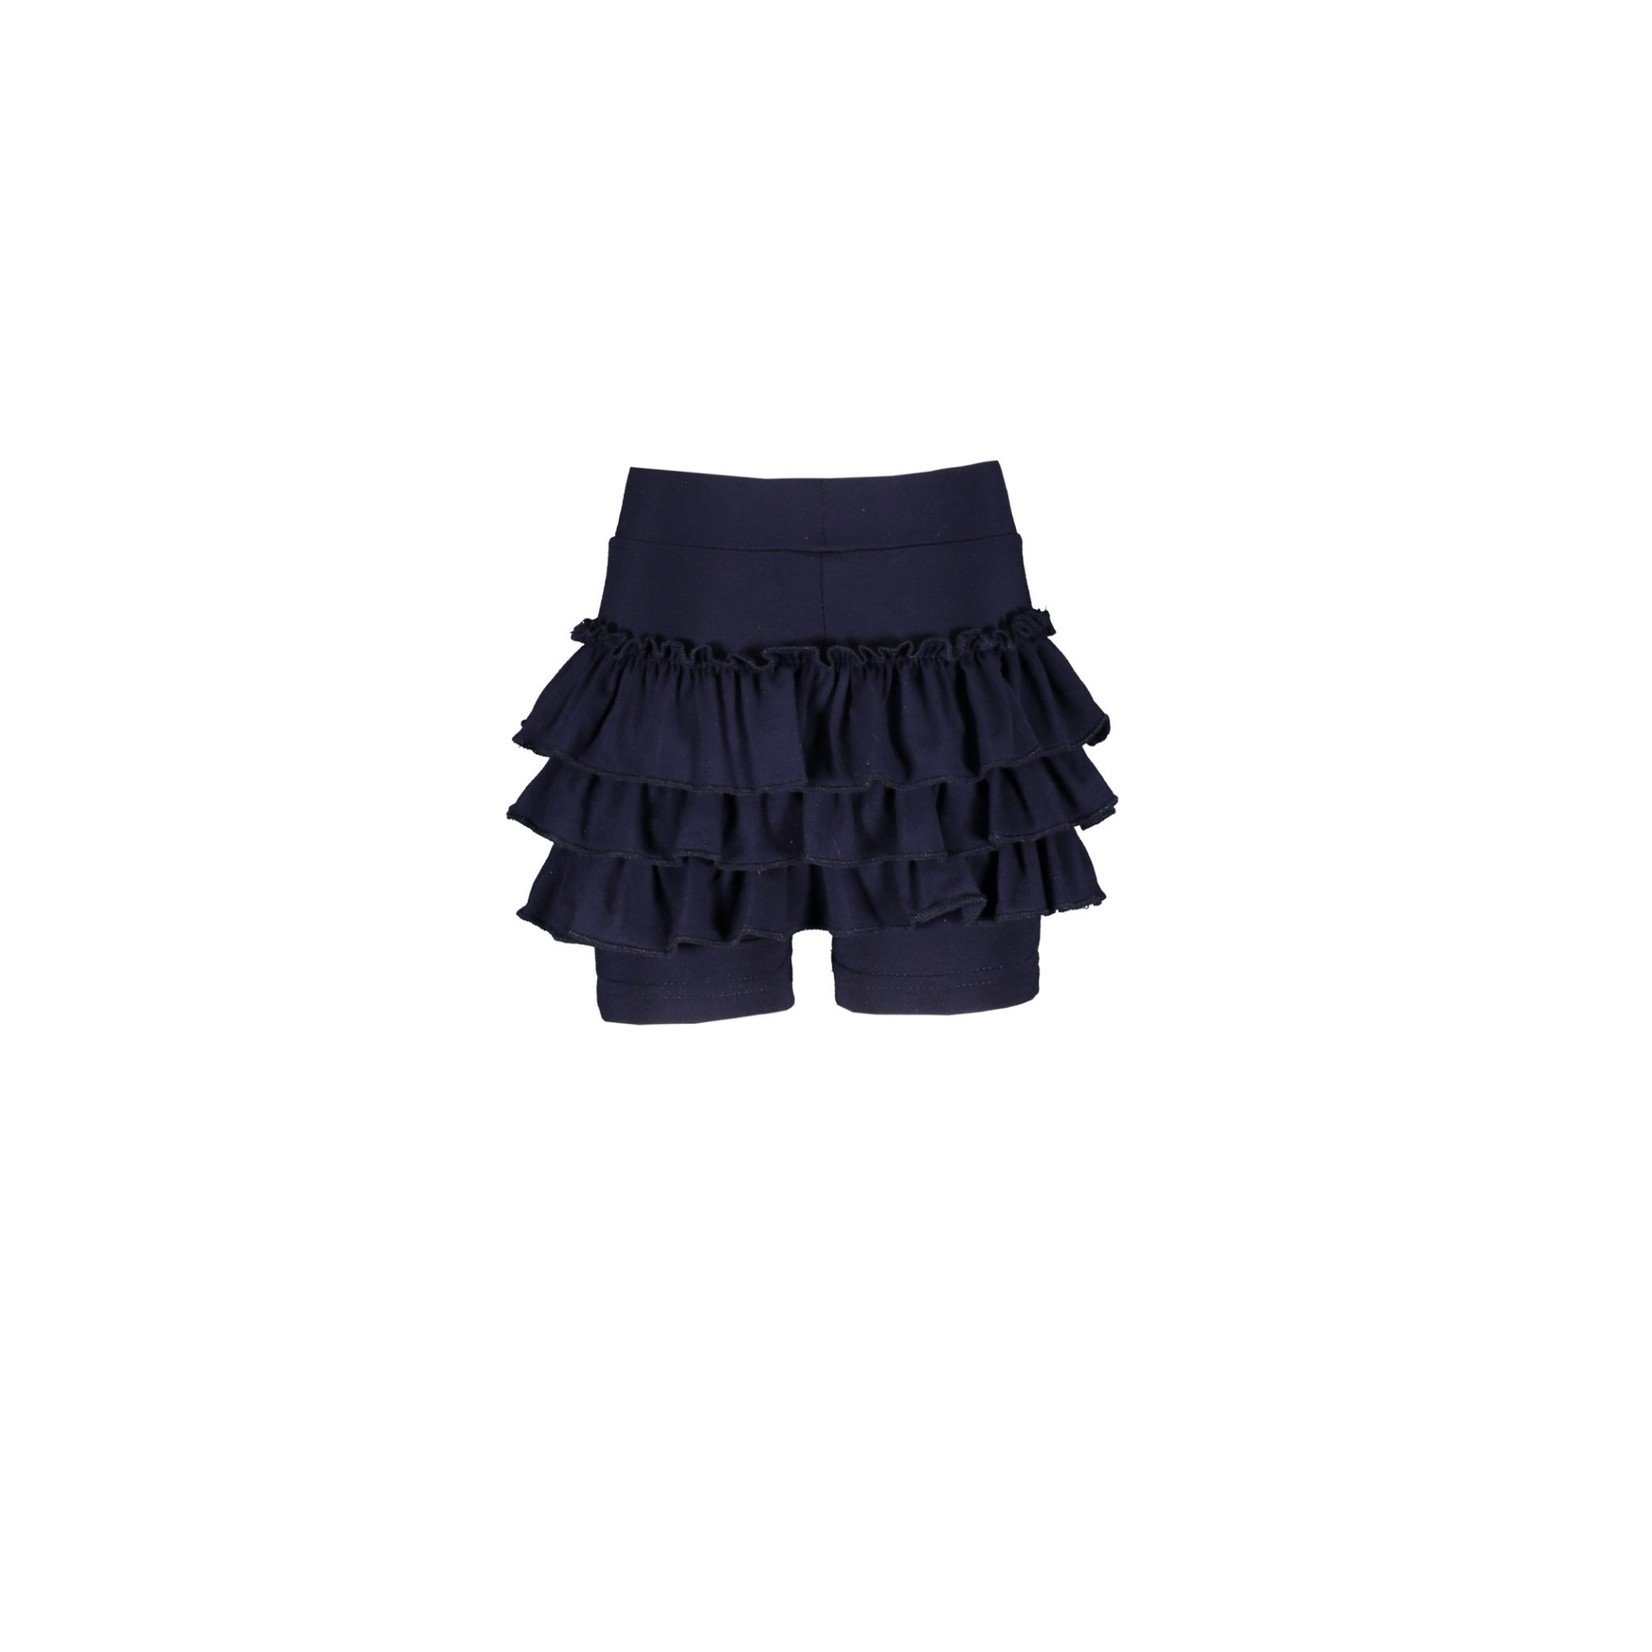 Le Chic Le Chic ruffled short